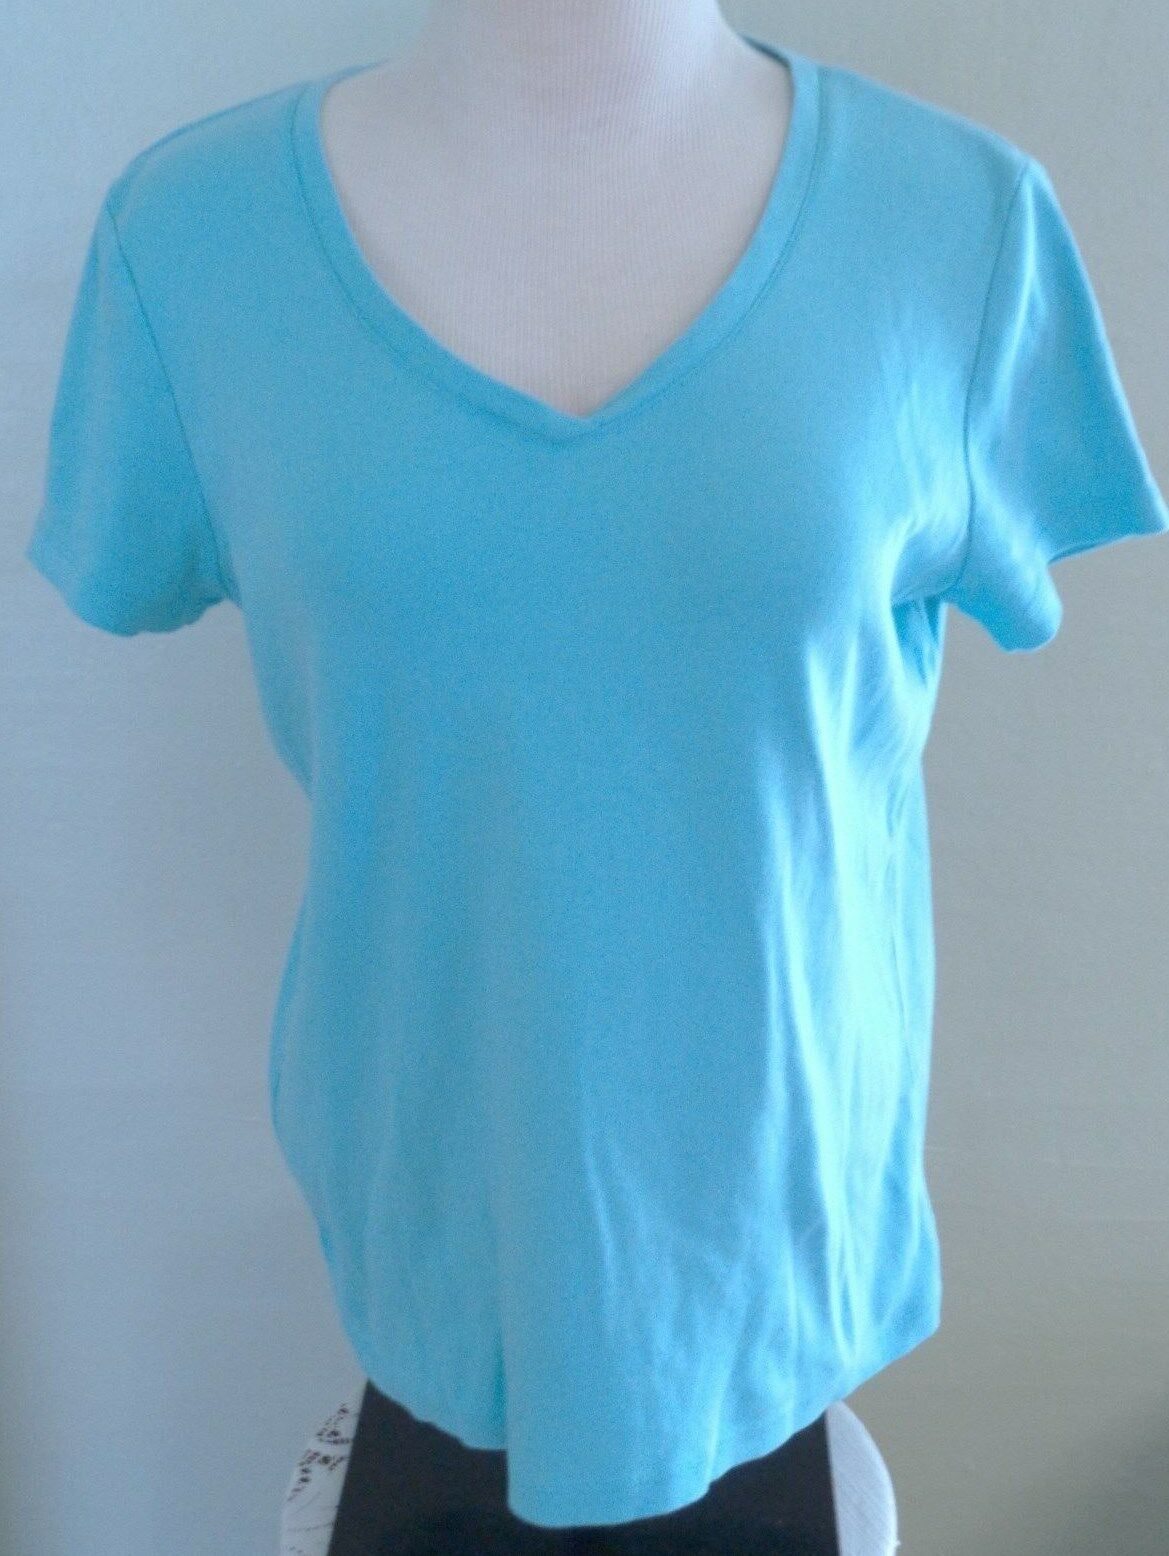 Primary image for St Johns Bay Top T Shirt M Medium Pullover Blue Short Sleeve Stretch